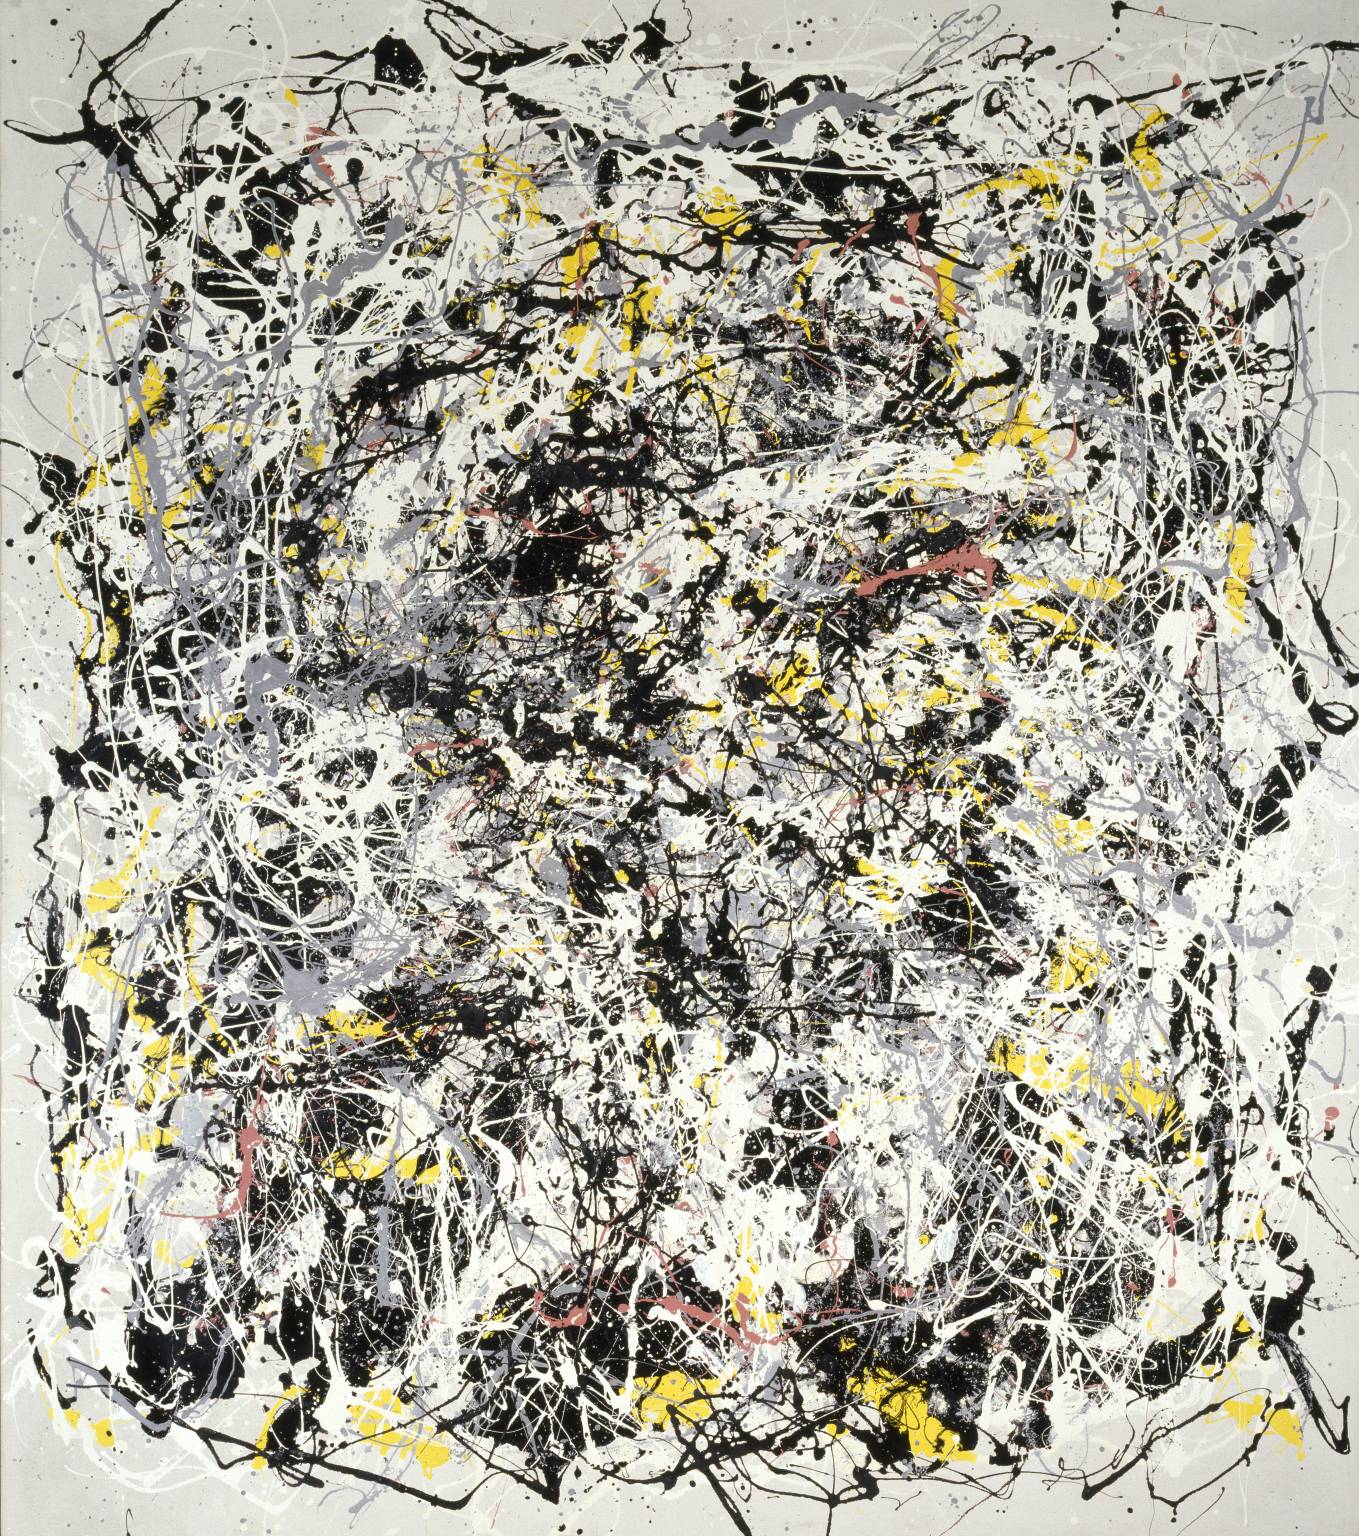 Art & Language, Portrait of V. I. Lenin with Cap, in the Style of Jackson Pollock III, 1980. Copyright: Tate, London,